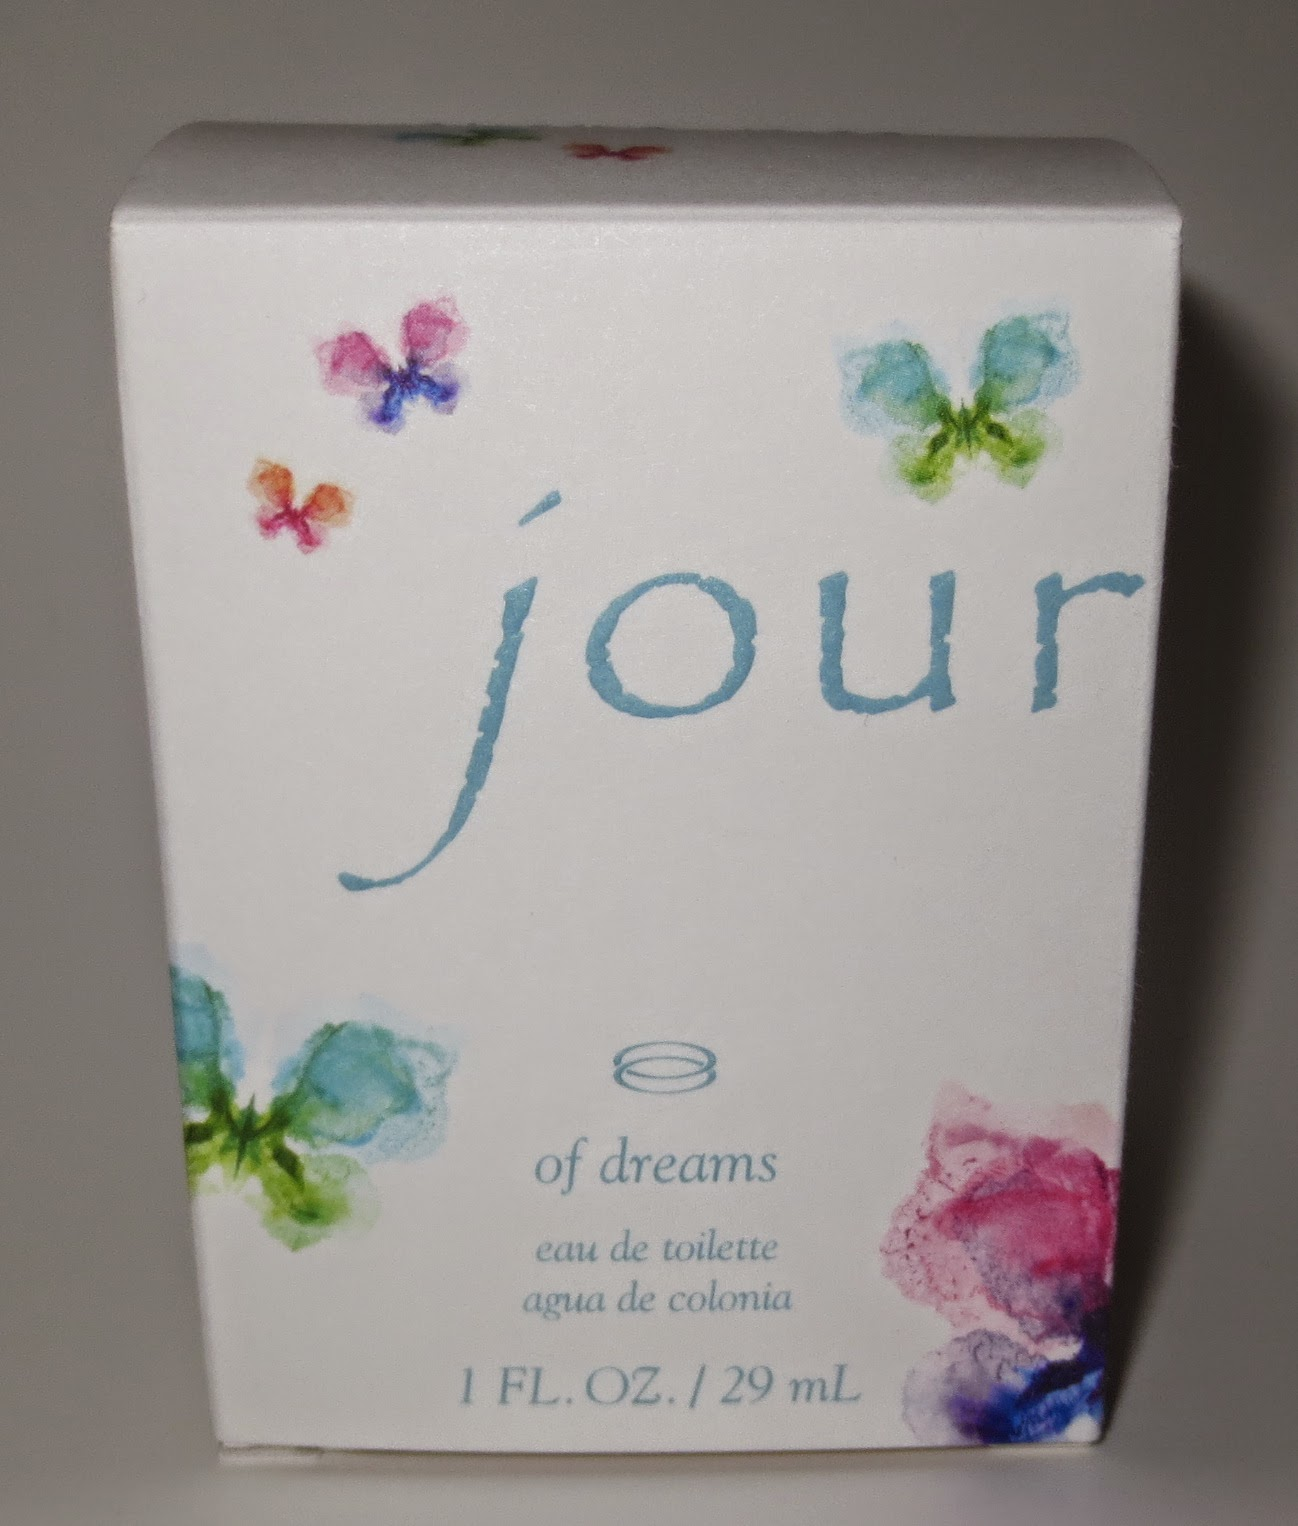 Mary Kay Journey of Dreams EDT Packaging